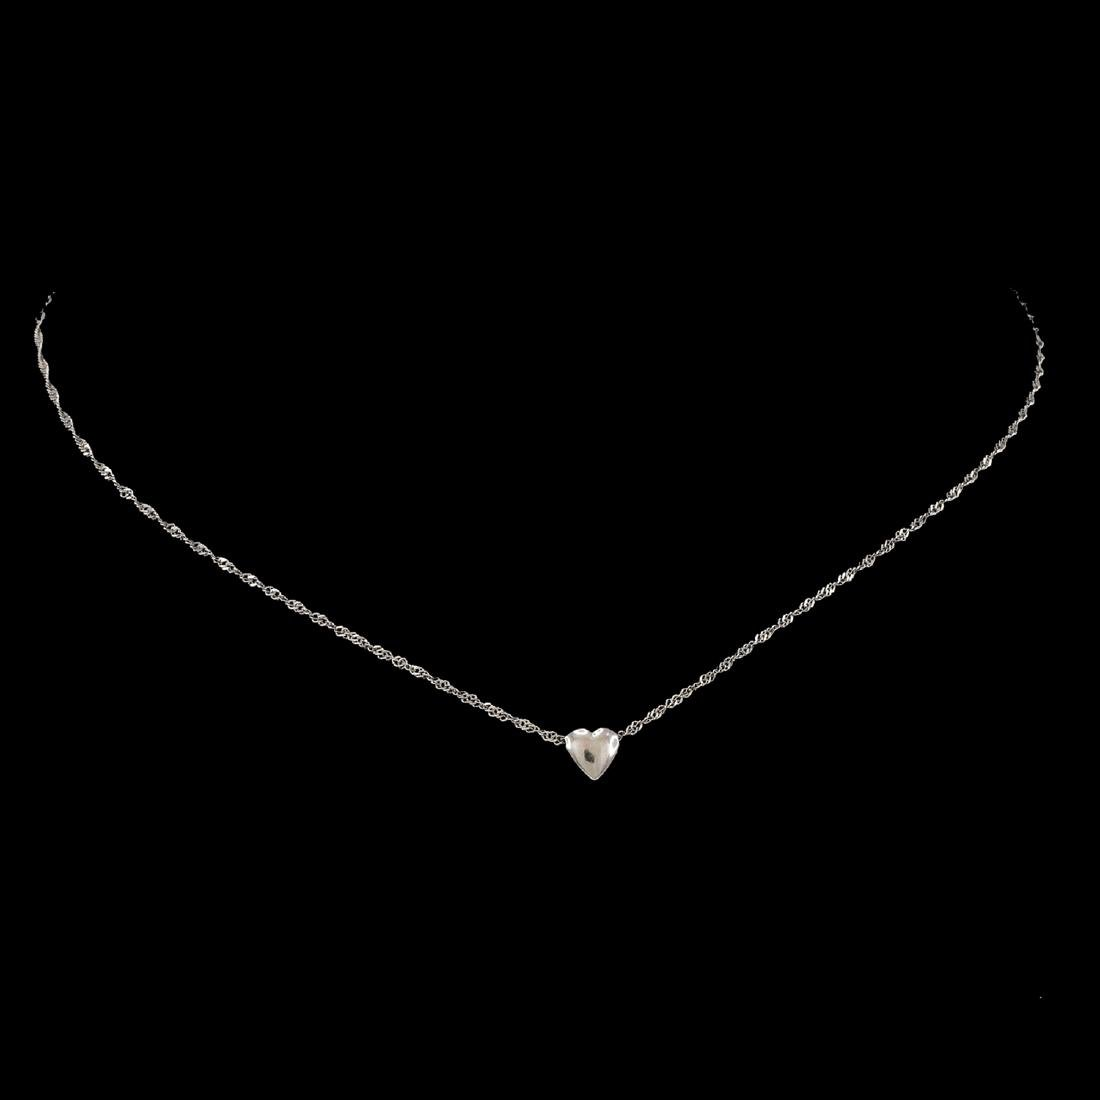 *Fine Jewelry 14 KT White Gold Singapore W Puffed Heart